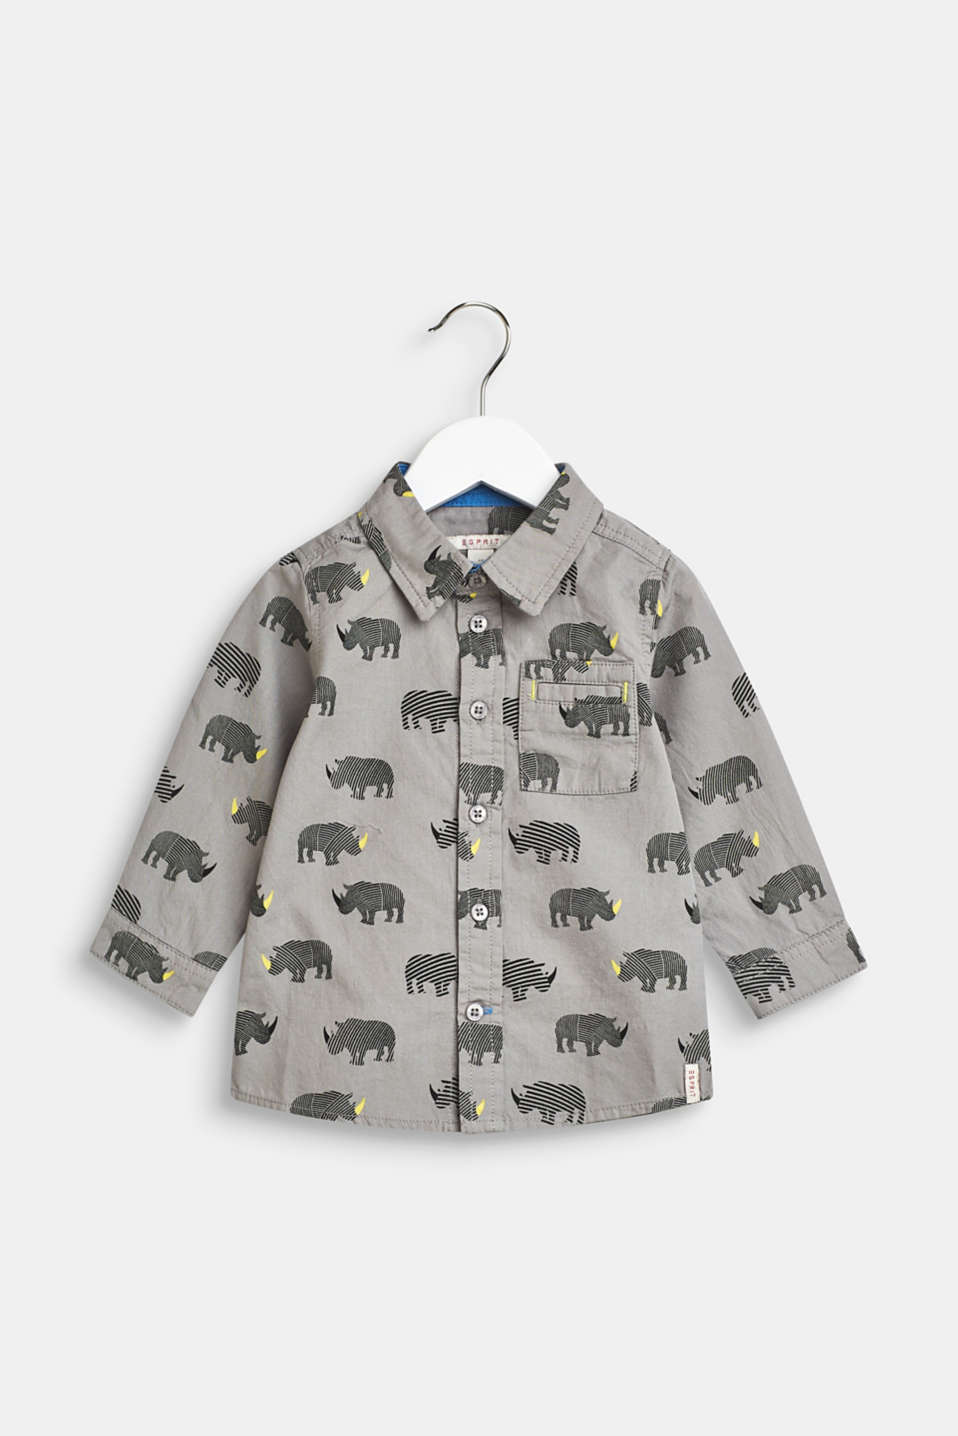 Esprit - Shirt with a rhino print, 100% cotton